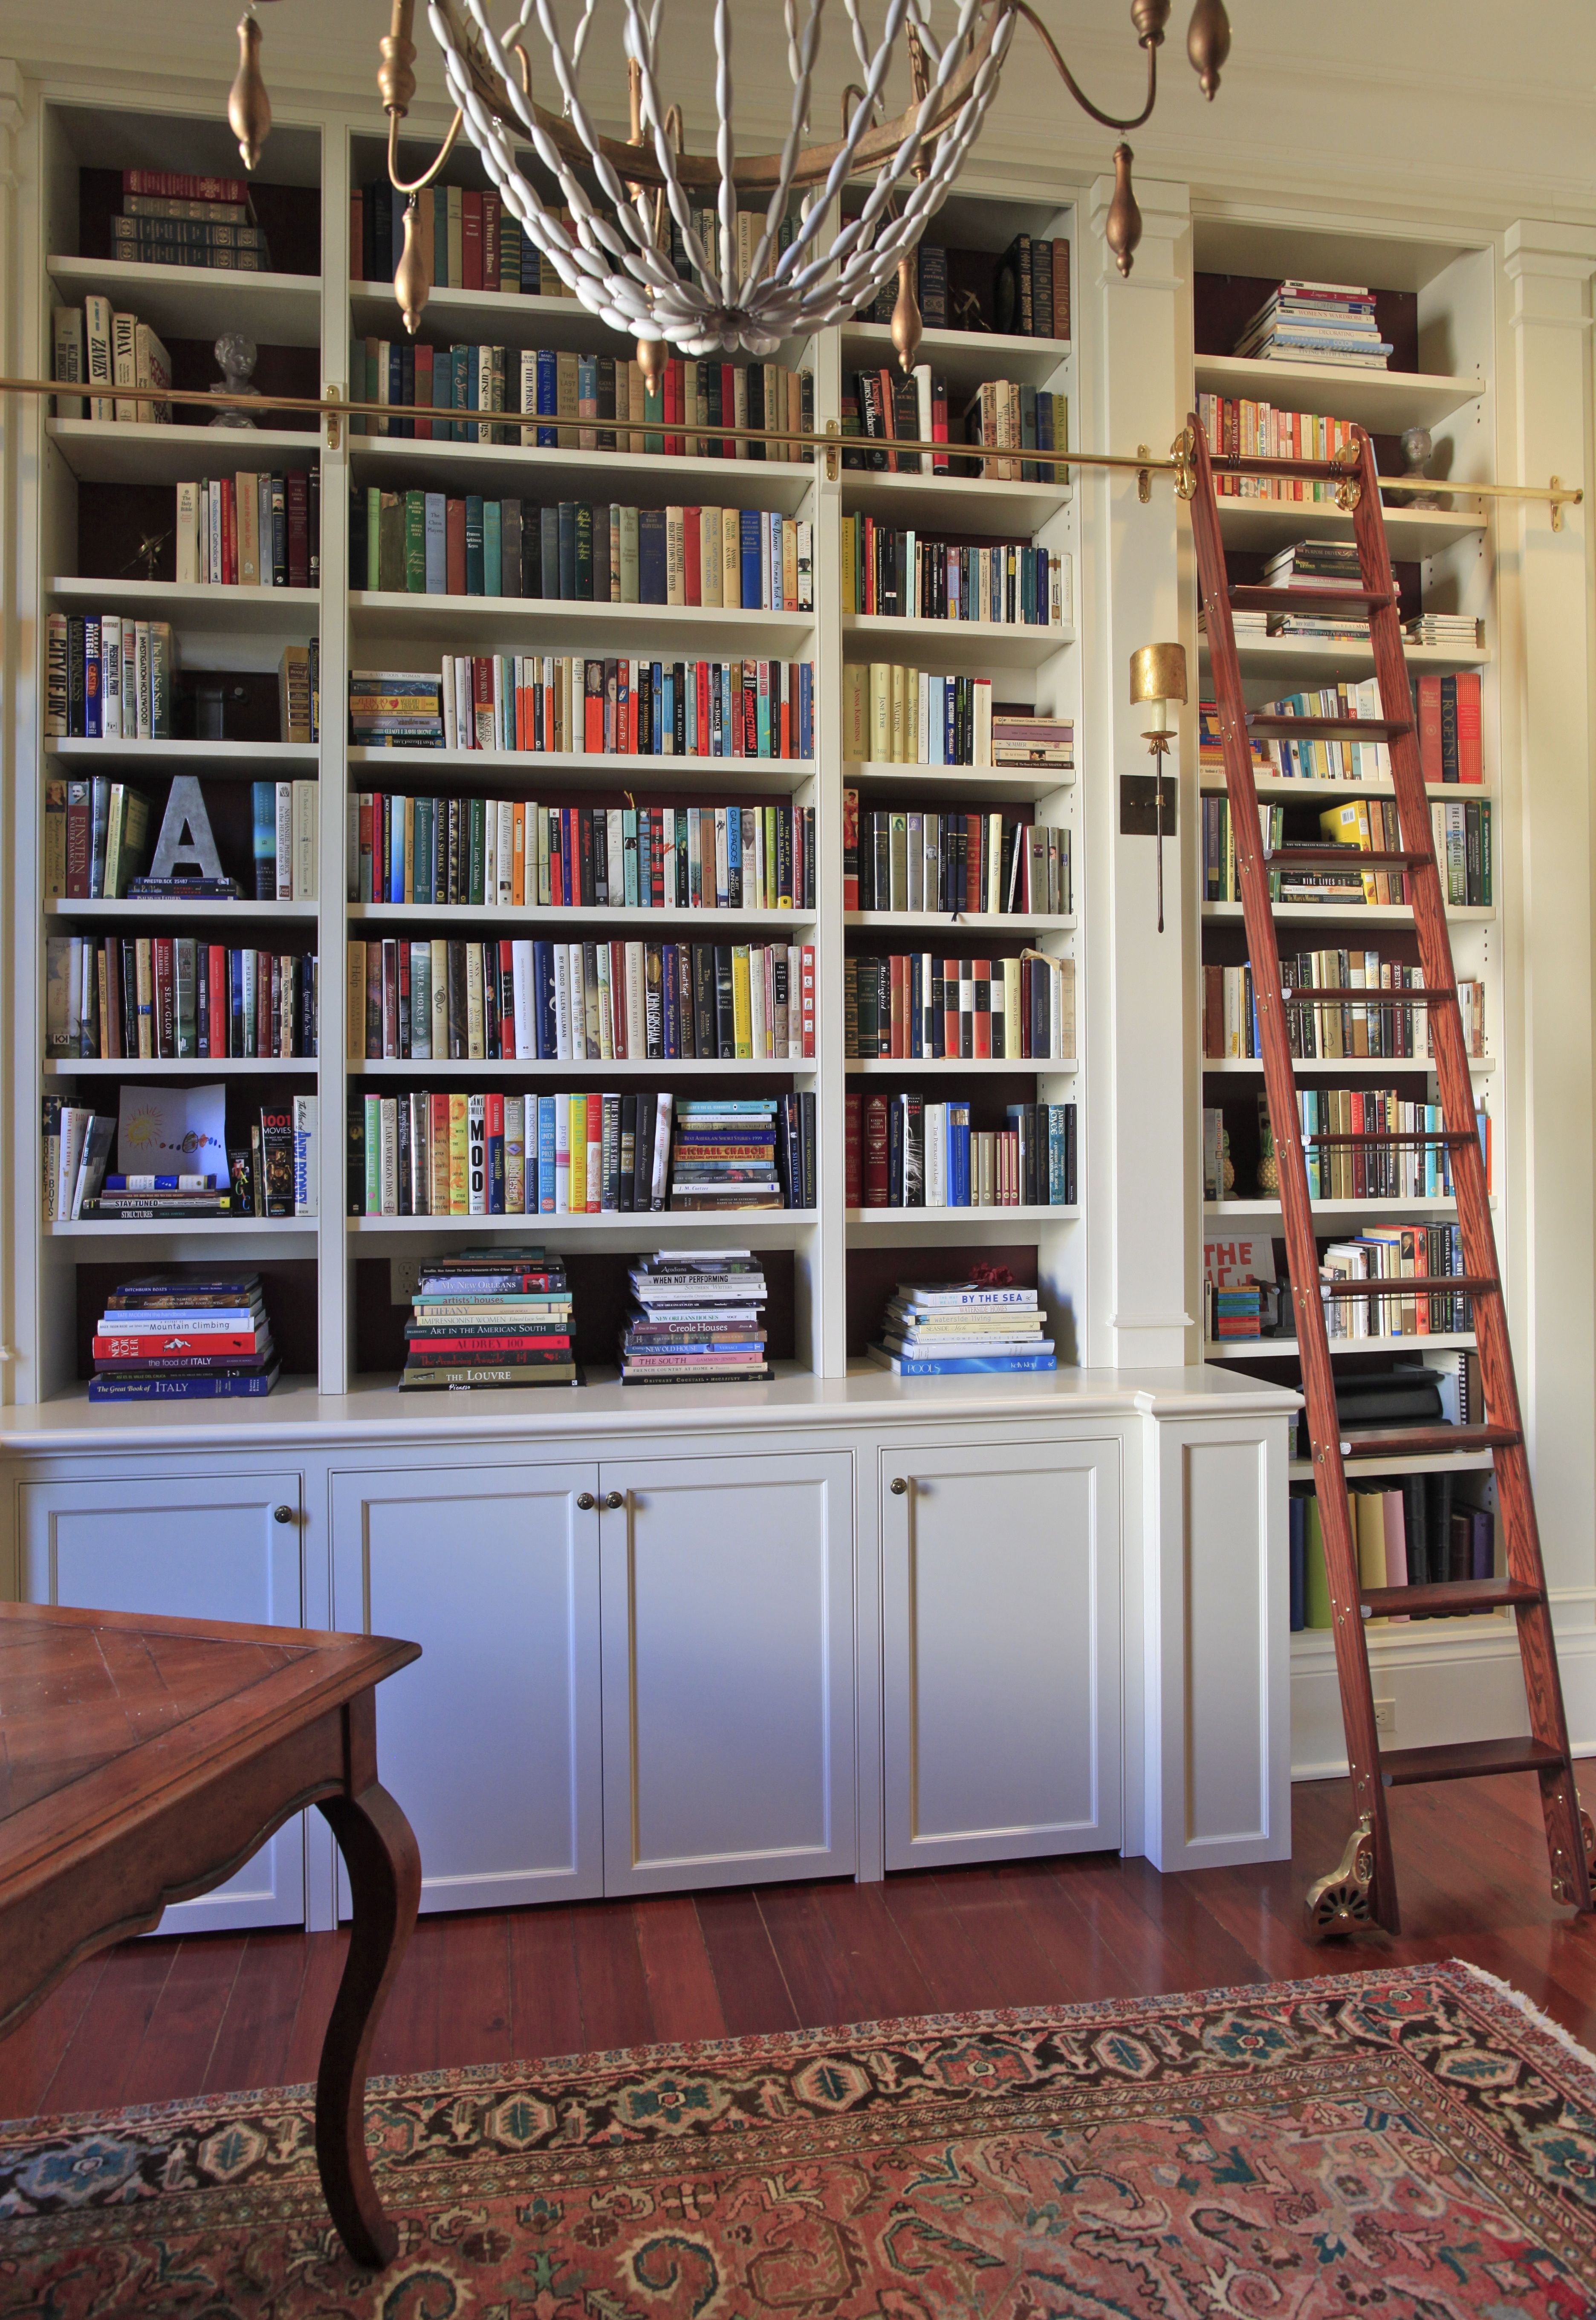 Home Library Furniture: Beautiful Custom Built-in Bookcase For Home Library